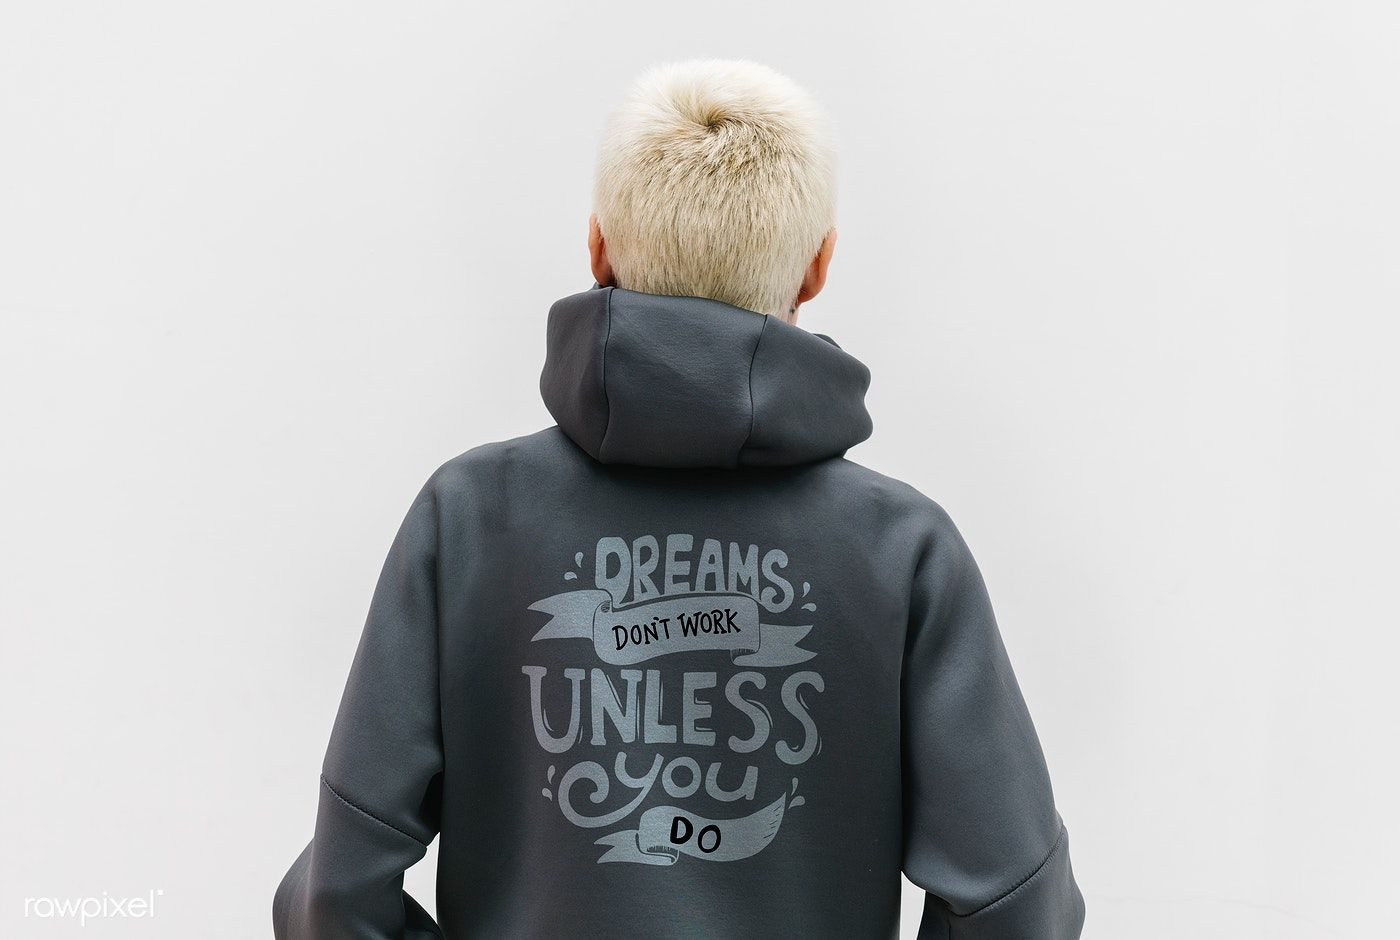 Download Download Premium Psd Of Cool Girl Wearin A Gray Motivational Hoodie 1215183 Motivational Hoodies Cool Girl Hoodie Mockup